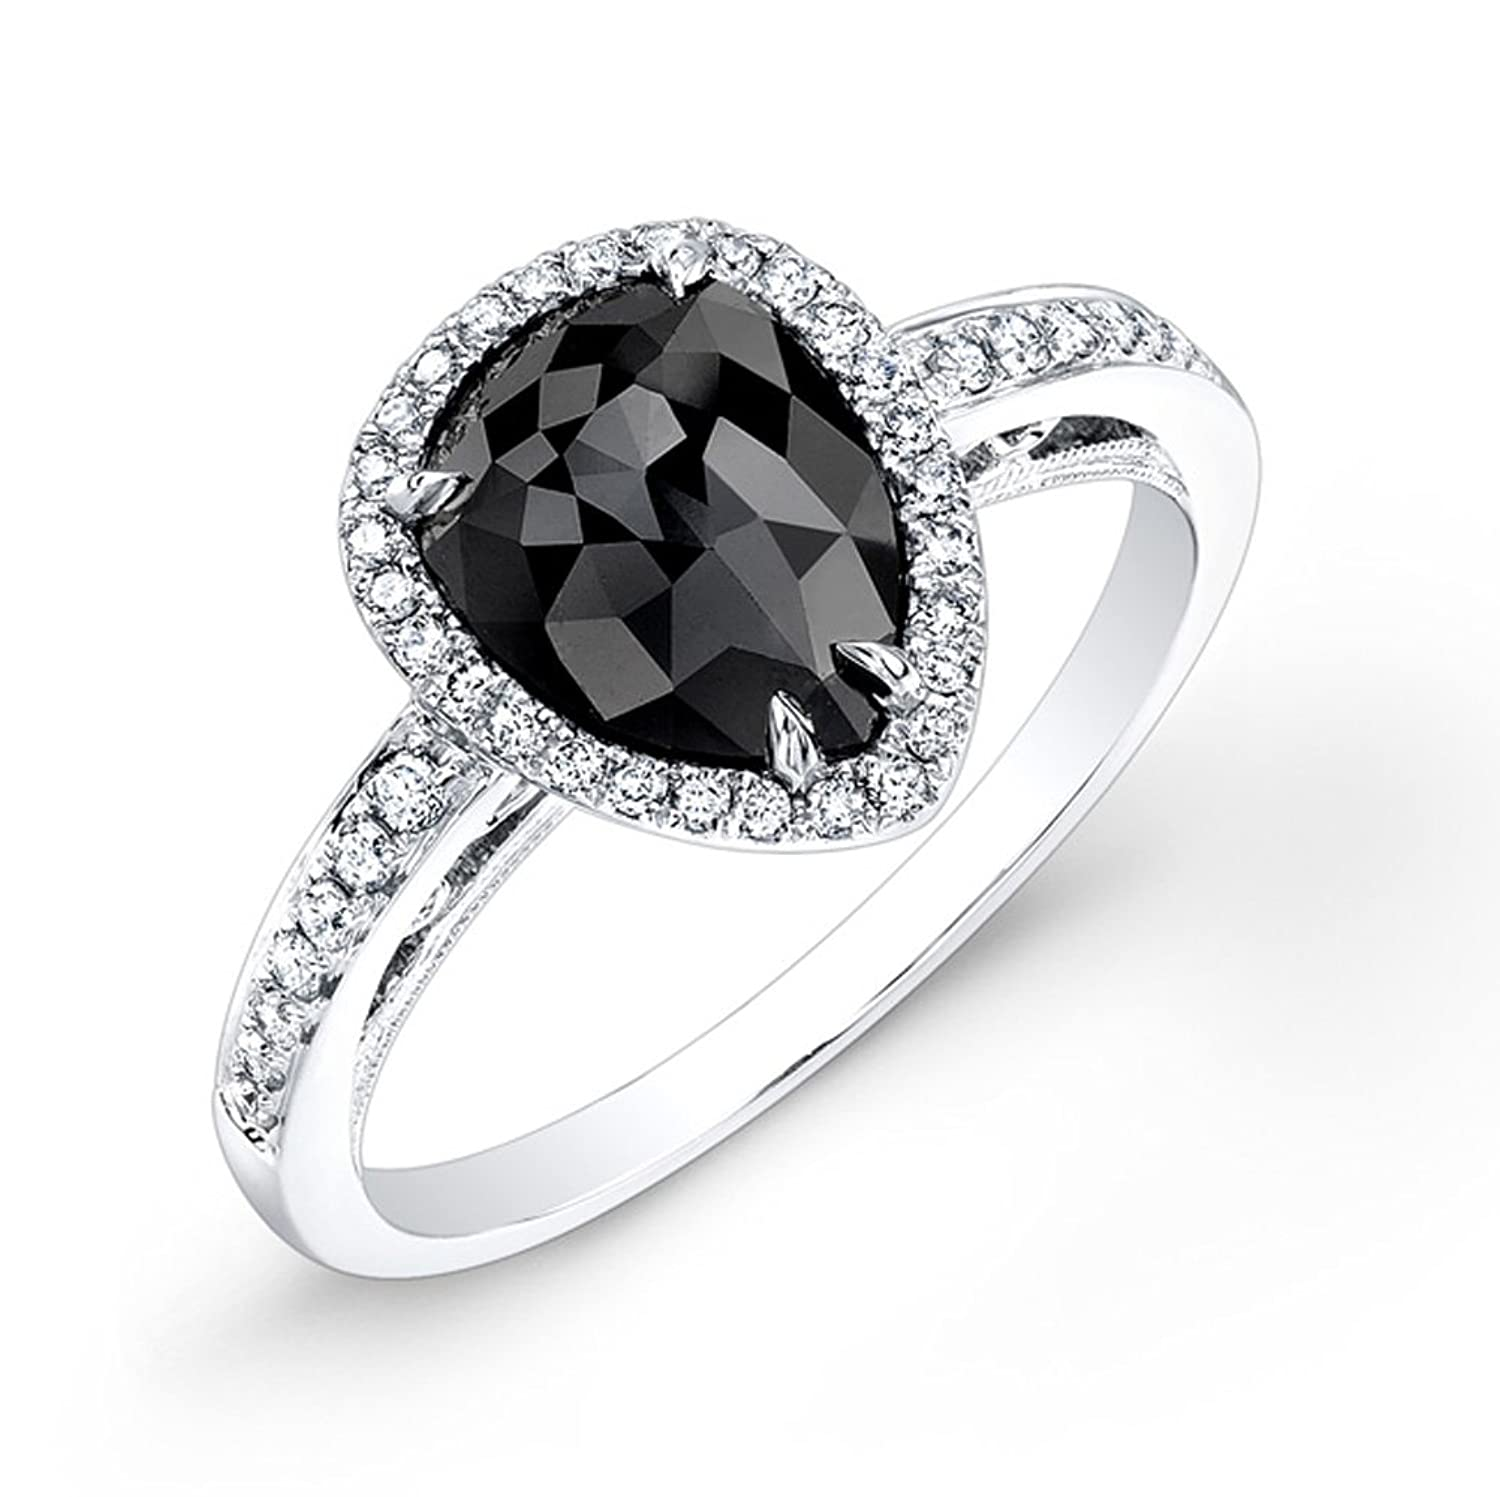 1 35ct pear shape black diamond engagement ring